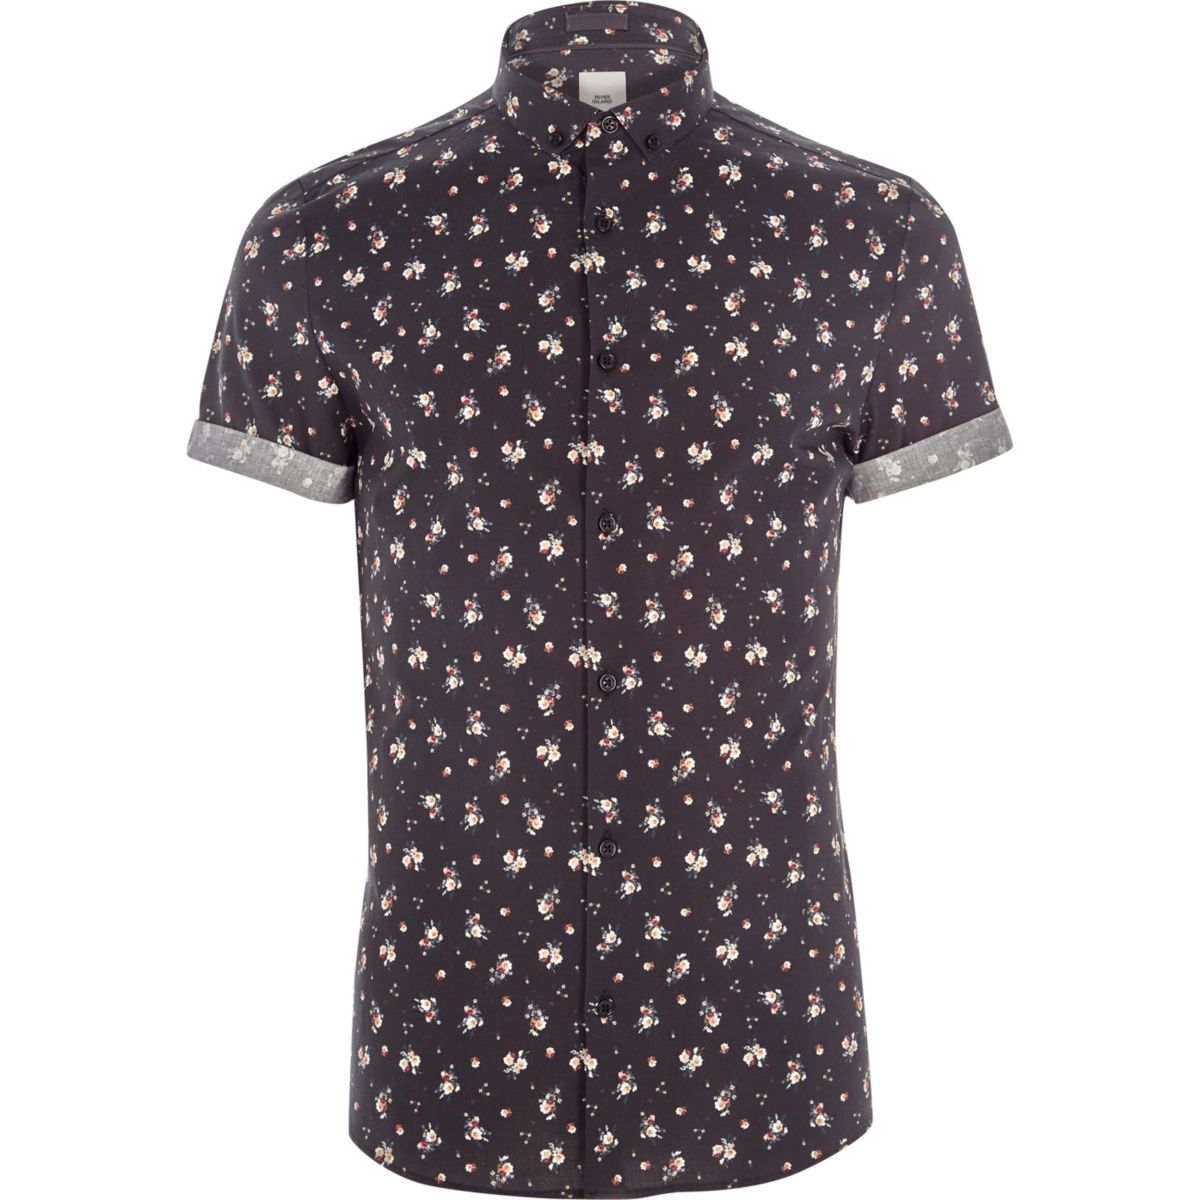 Black ditsy floral print skinny fit shirt shirts sale for Black floral print shirt